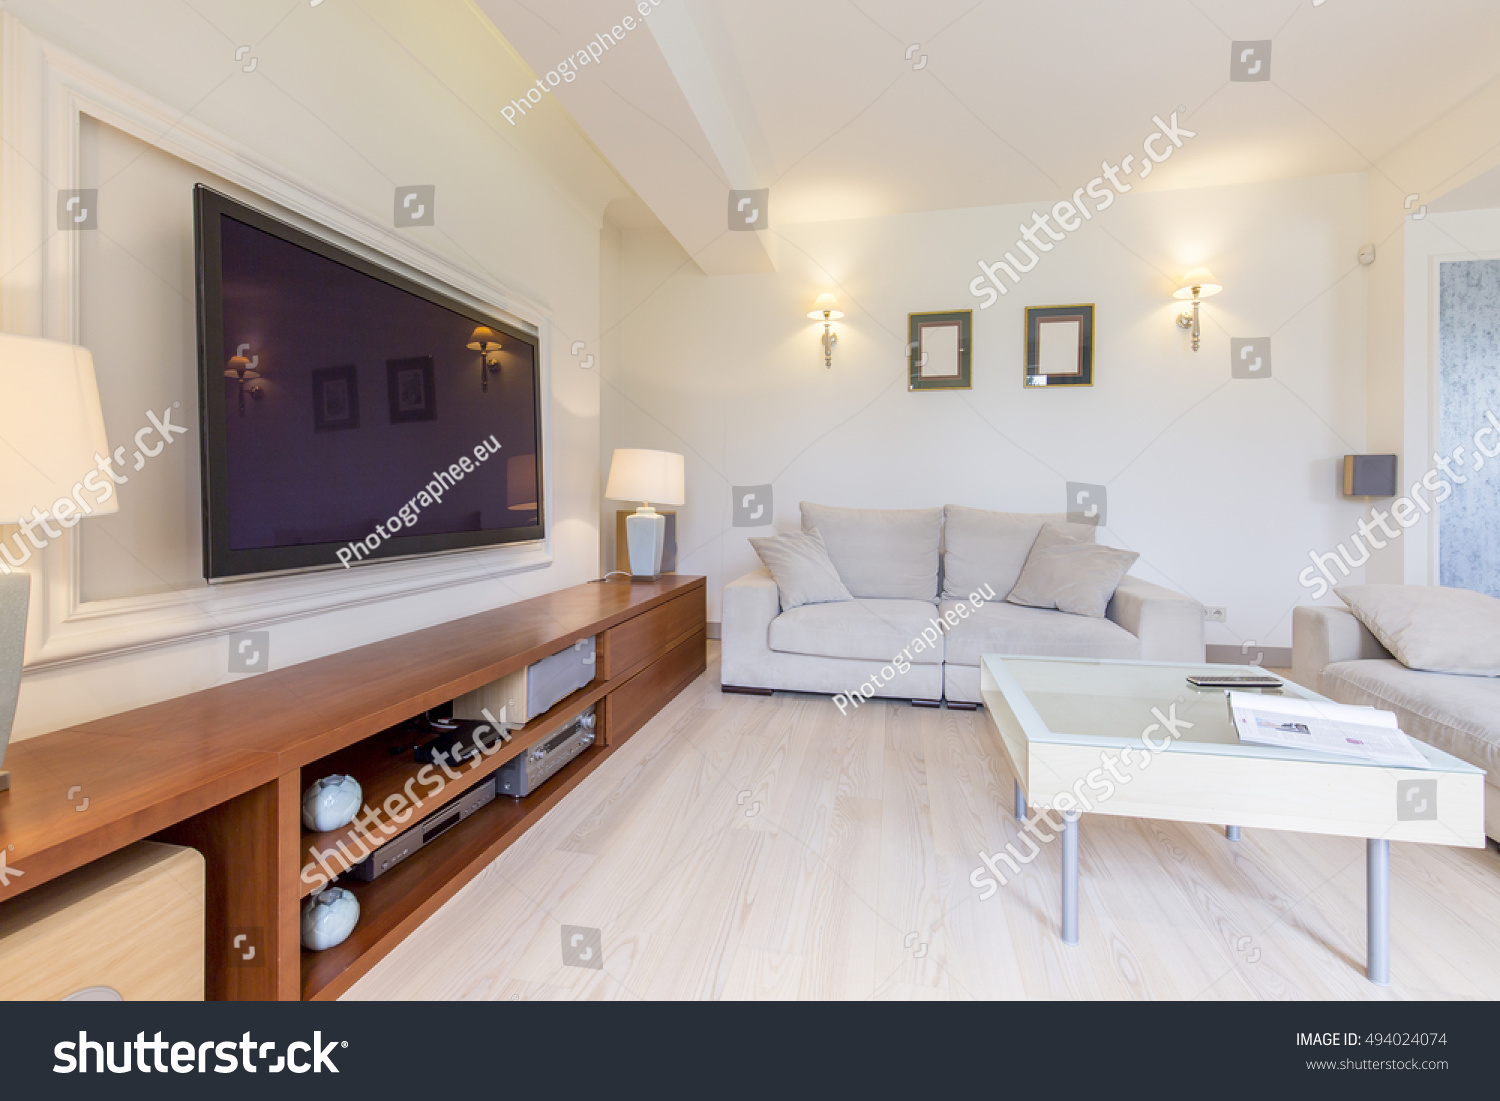 Tv On Wall Modern Spacious Living Stock Photo (Royalty Free ...